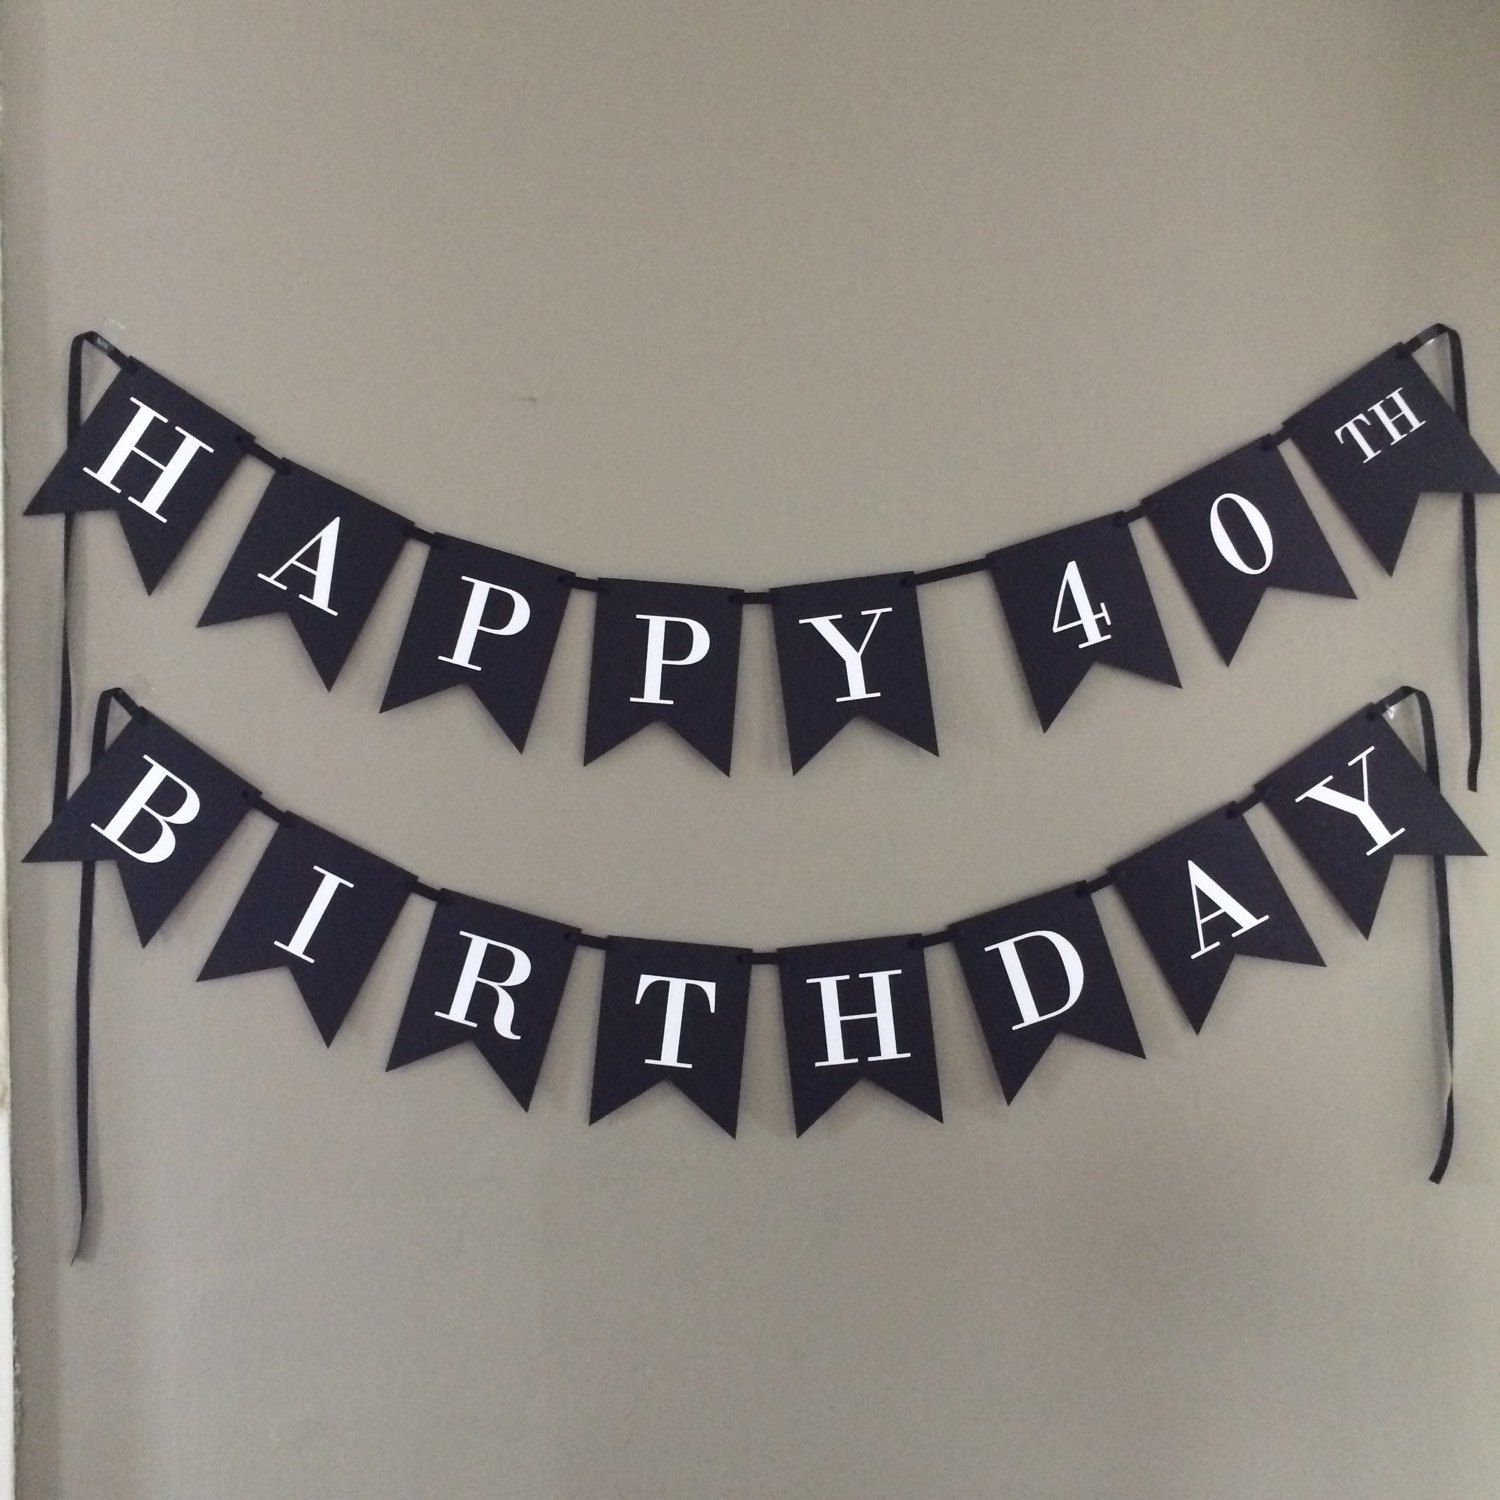 40th birthday banner black and white birthday by for 40th birthday decoration